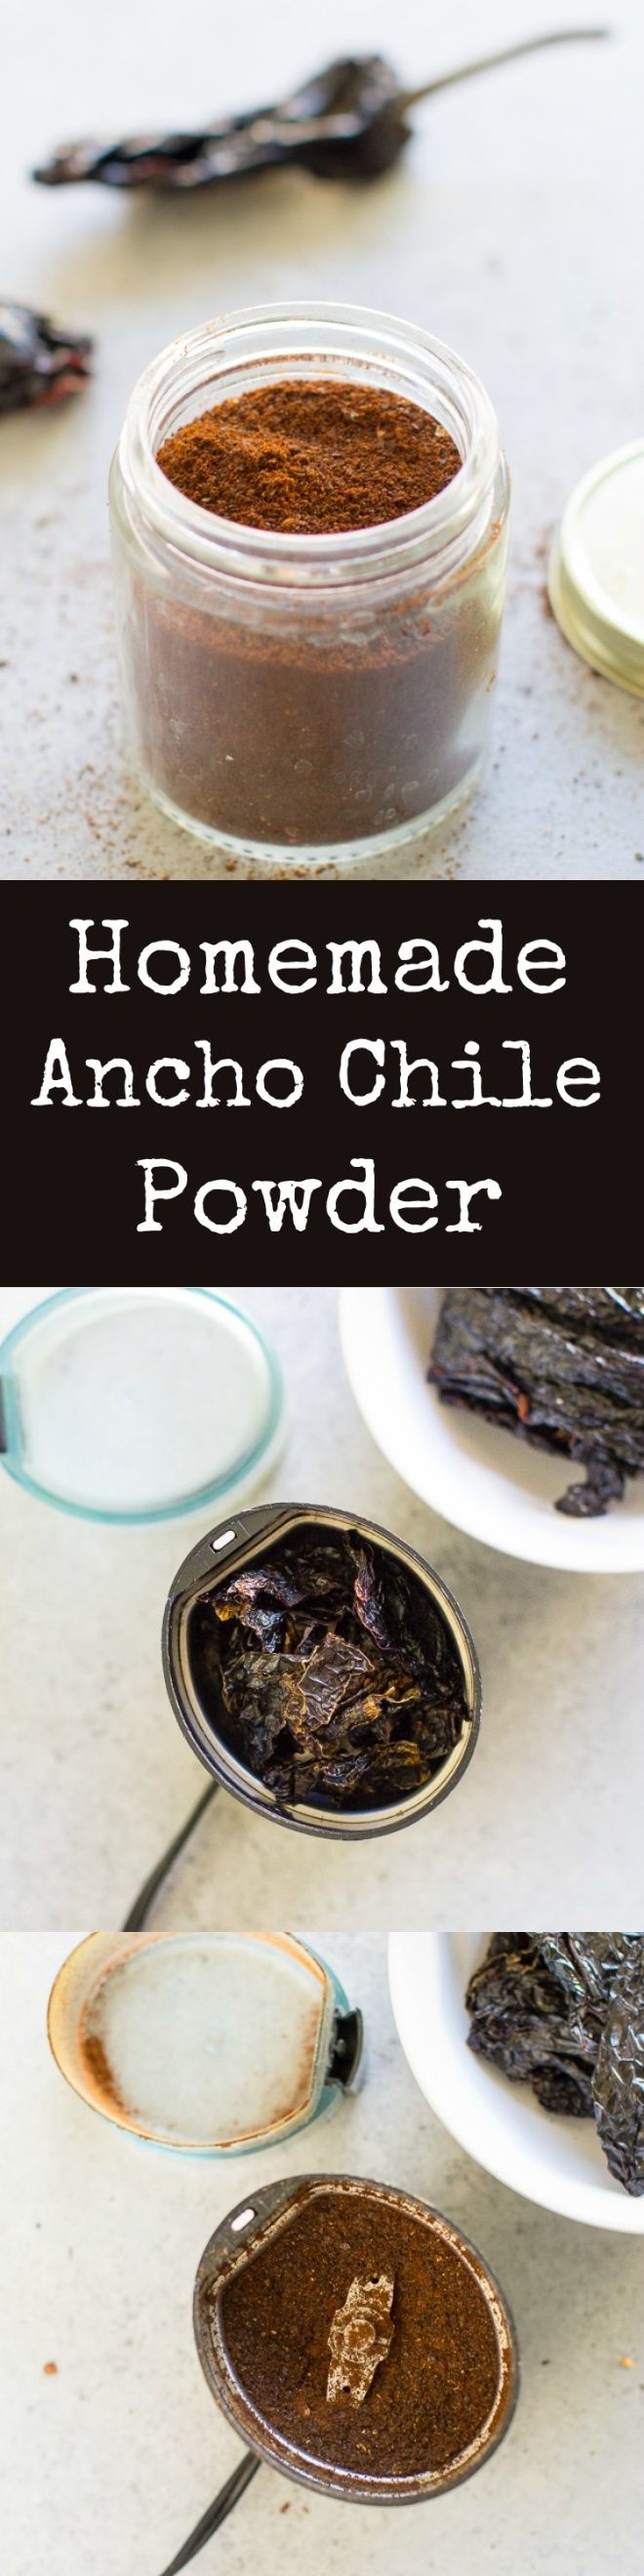 Homemade Ancho Chile Powder is DIRT CHEAP when you make it at home - just one ingredient! Add it to soups, salad dressings, and chicken for a spicy heat.